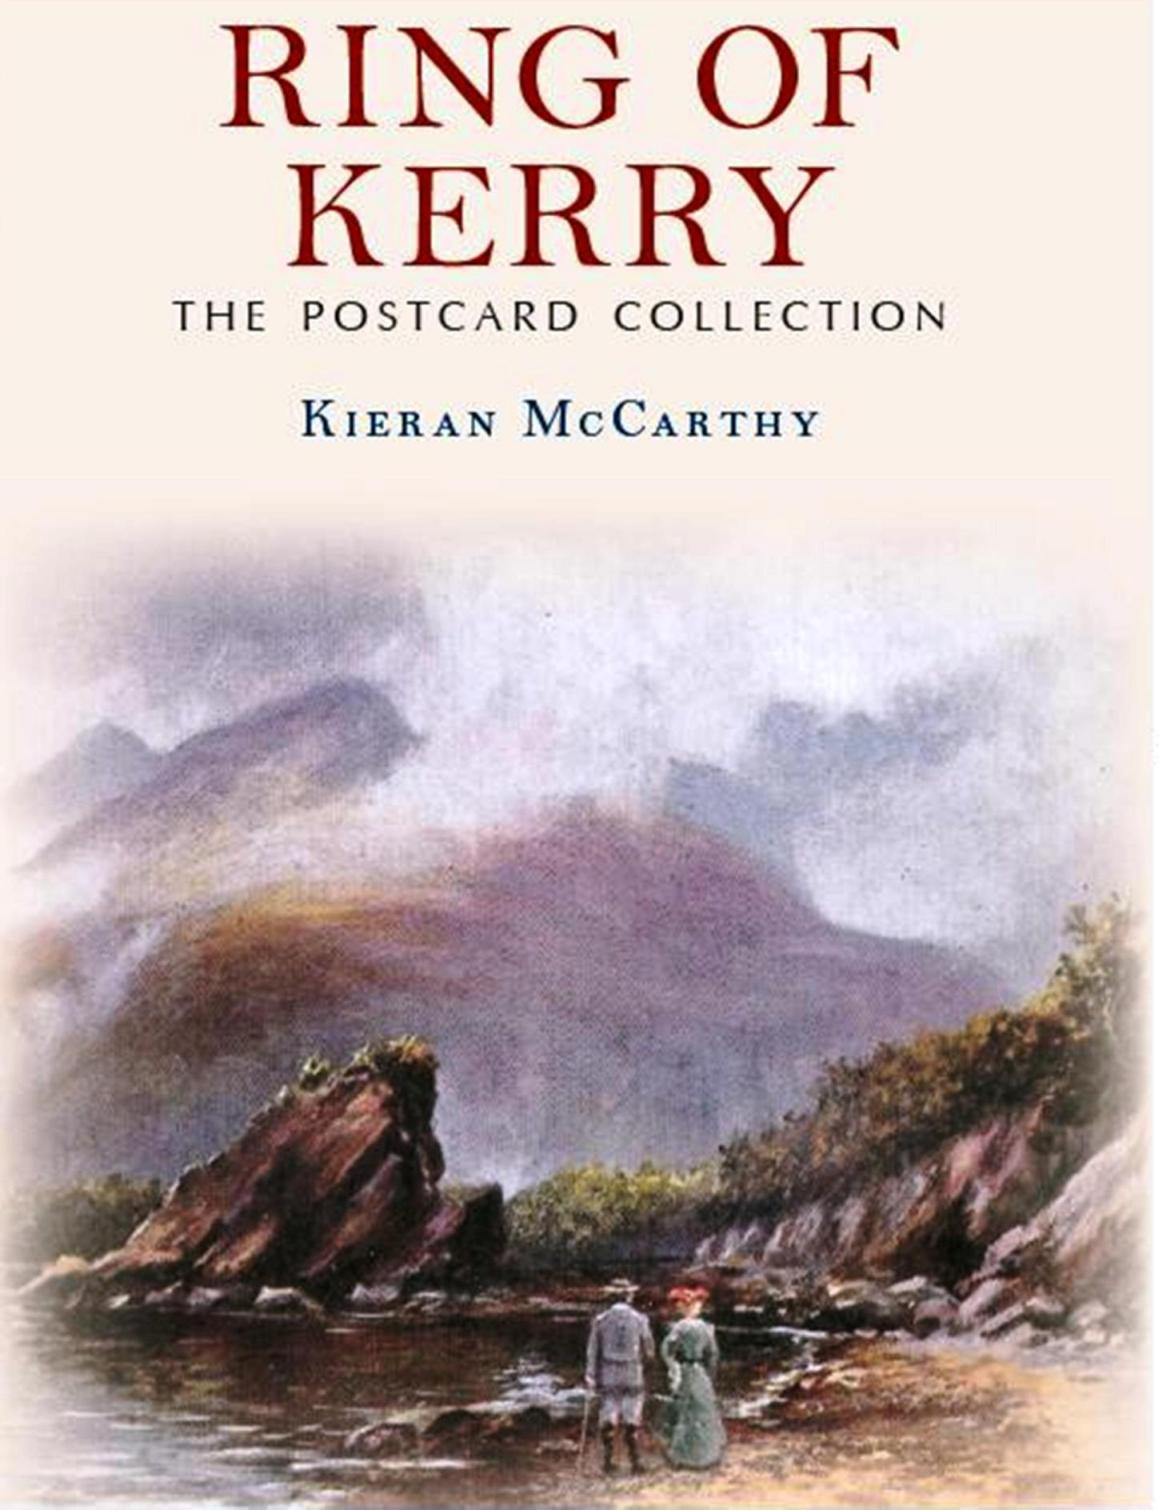 820a. Front cover of Ring of Kerry, The Postcard Collection by Kieran McCarthy